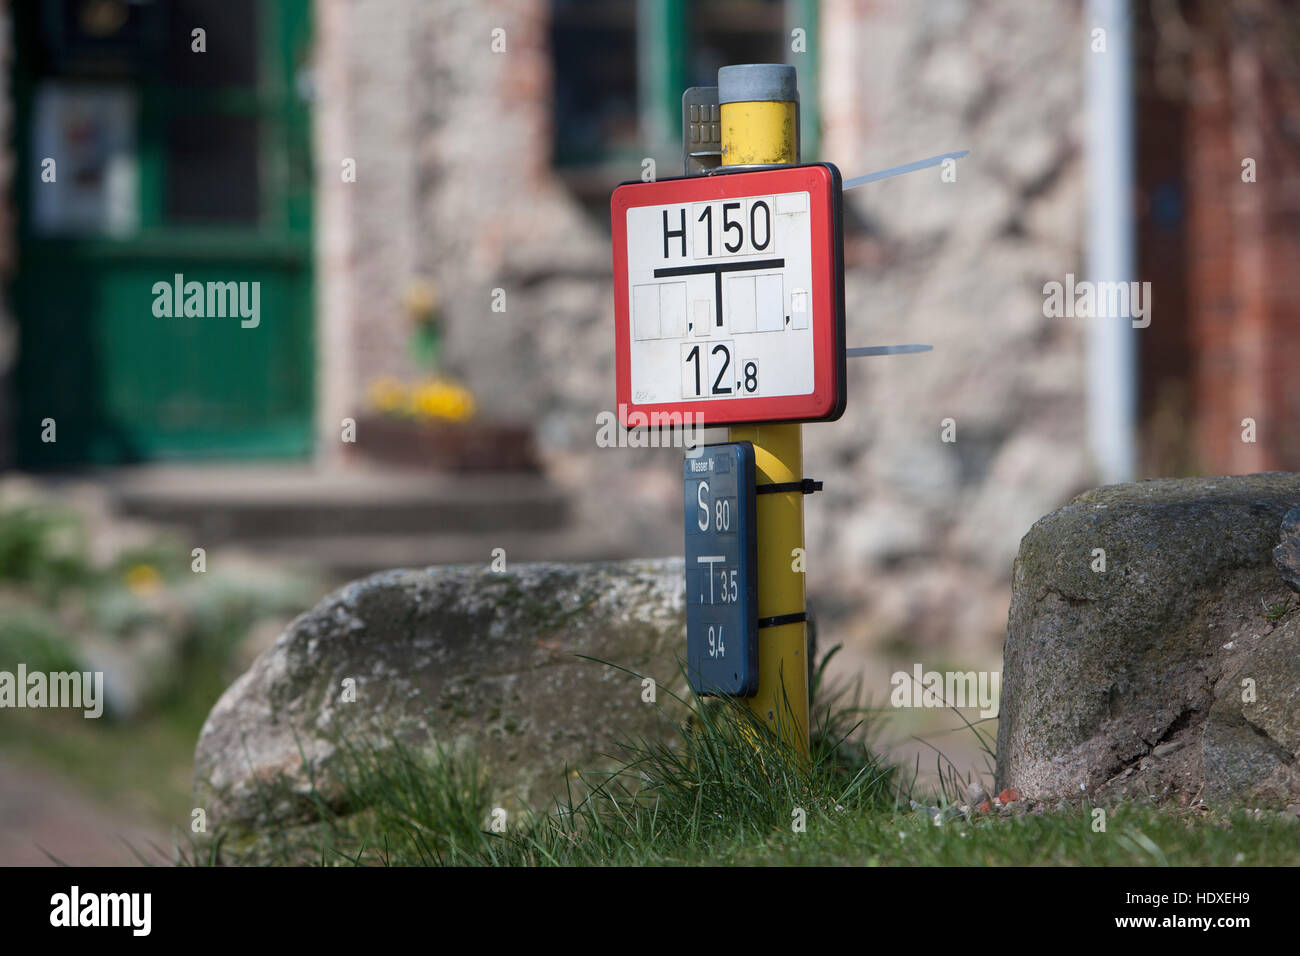 german signs for fire hydrant and gate valve, amtswerder, feldberg,  feldberger seenlandschaft, mecklenburgische - Stock Image